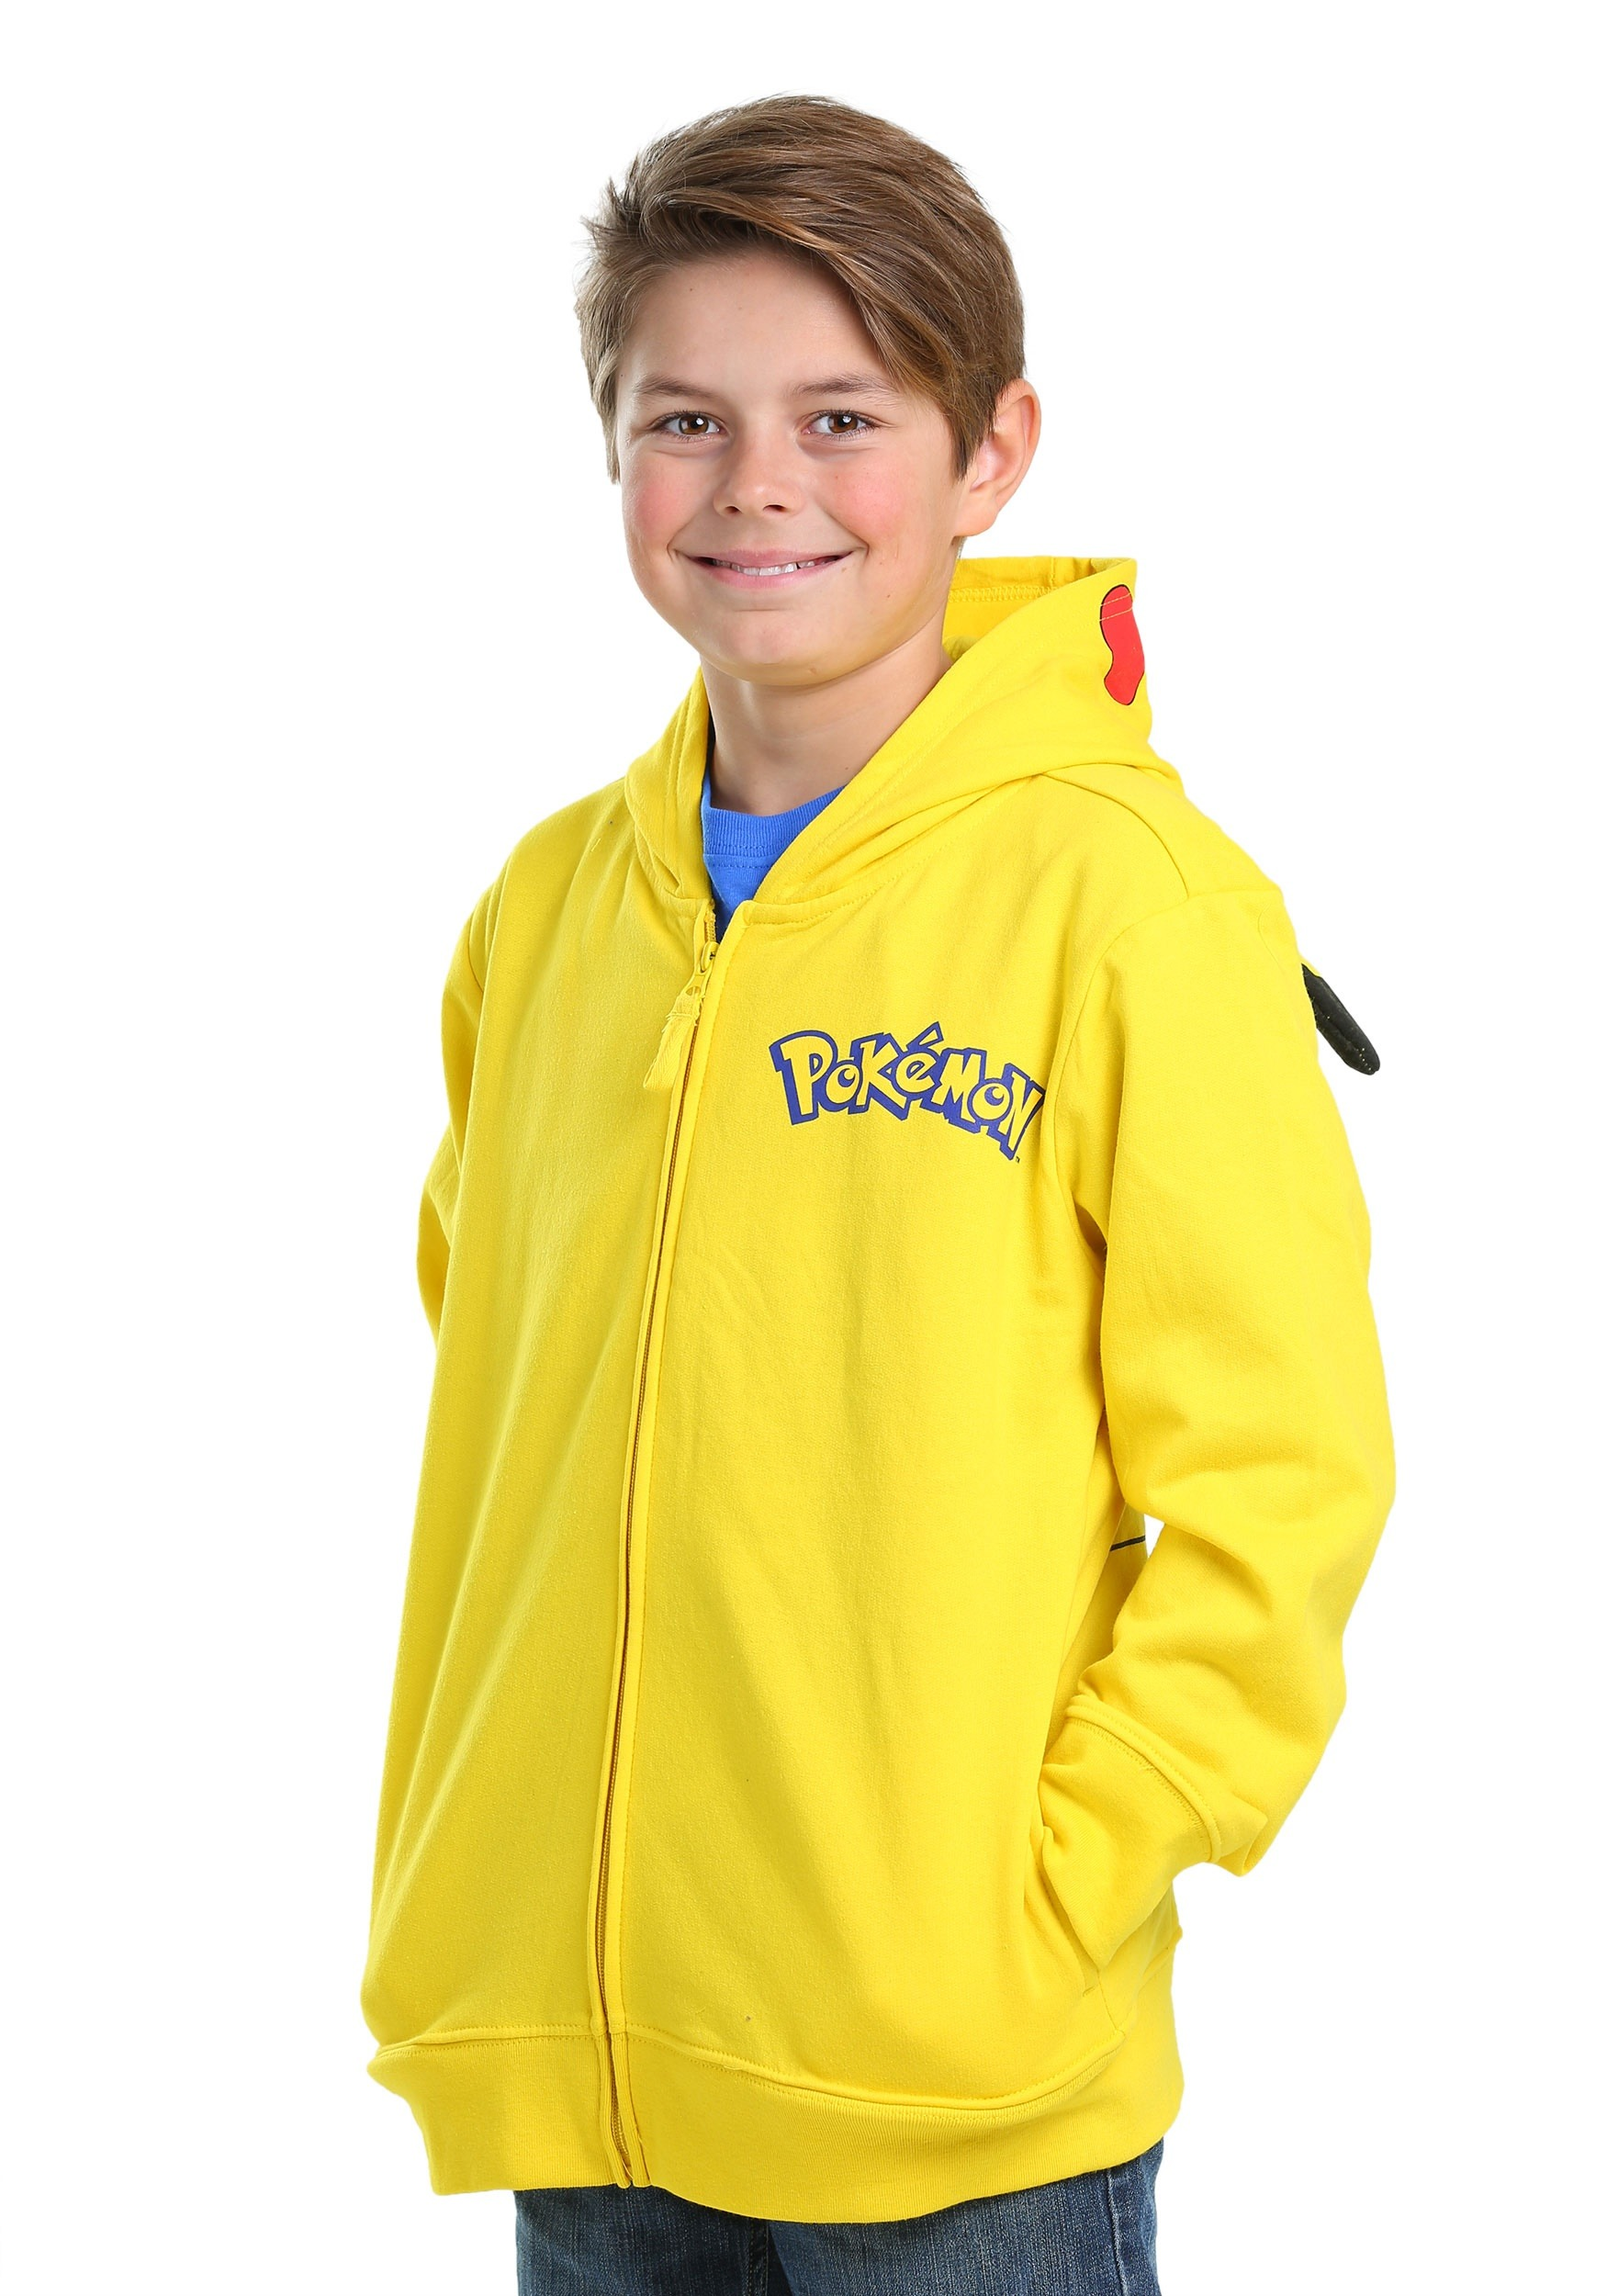 ... Pokemon Boys Pikachu Costume Sweatshirt  sc 1 st  Fun.com & Pokemon Pikachu Costume Hooded Sweatshirt for Boys